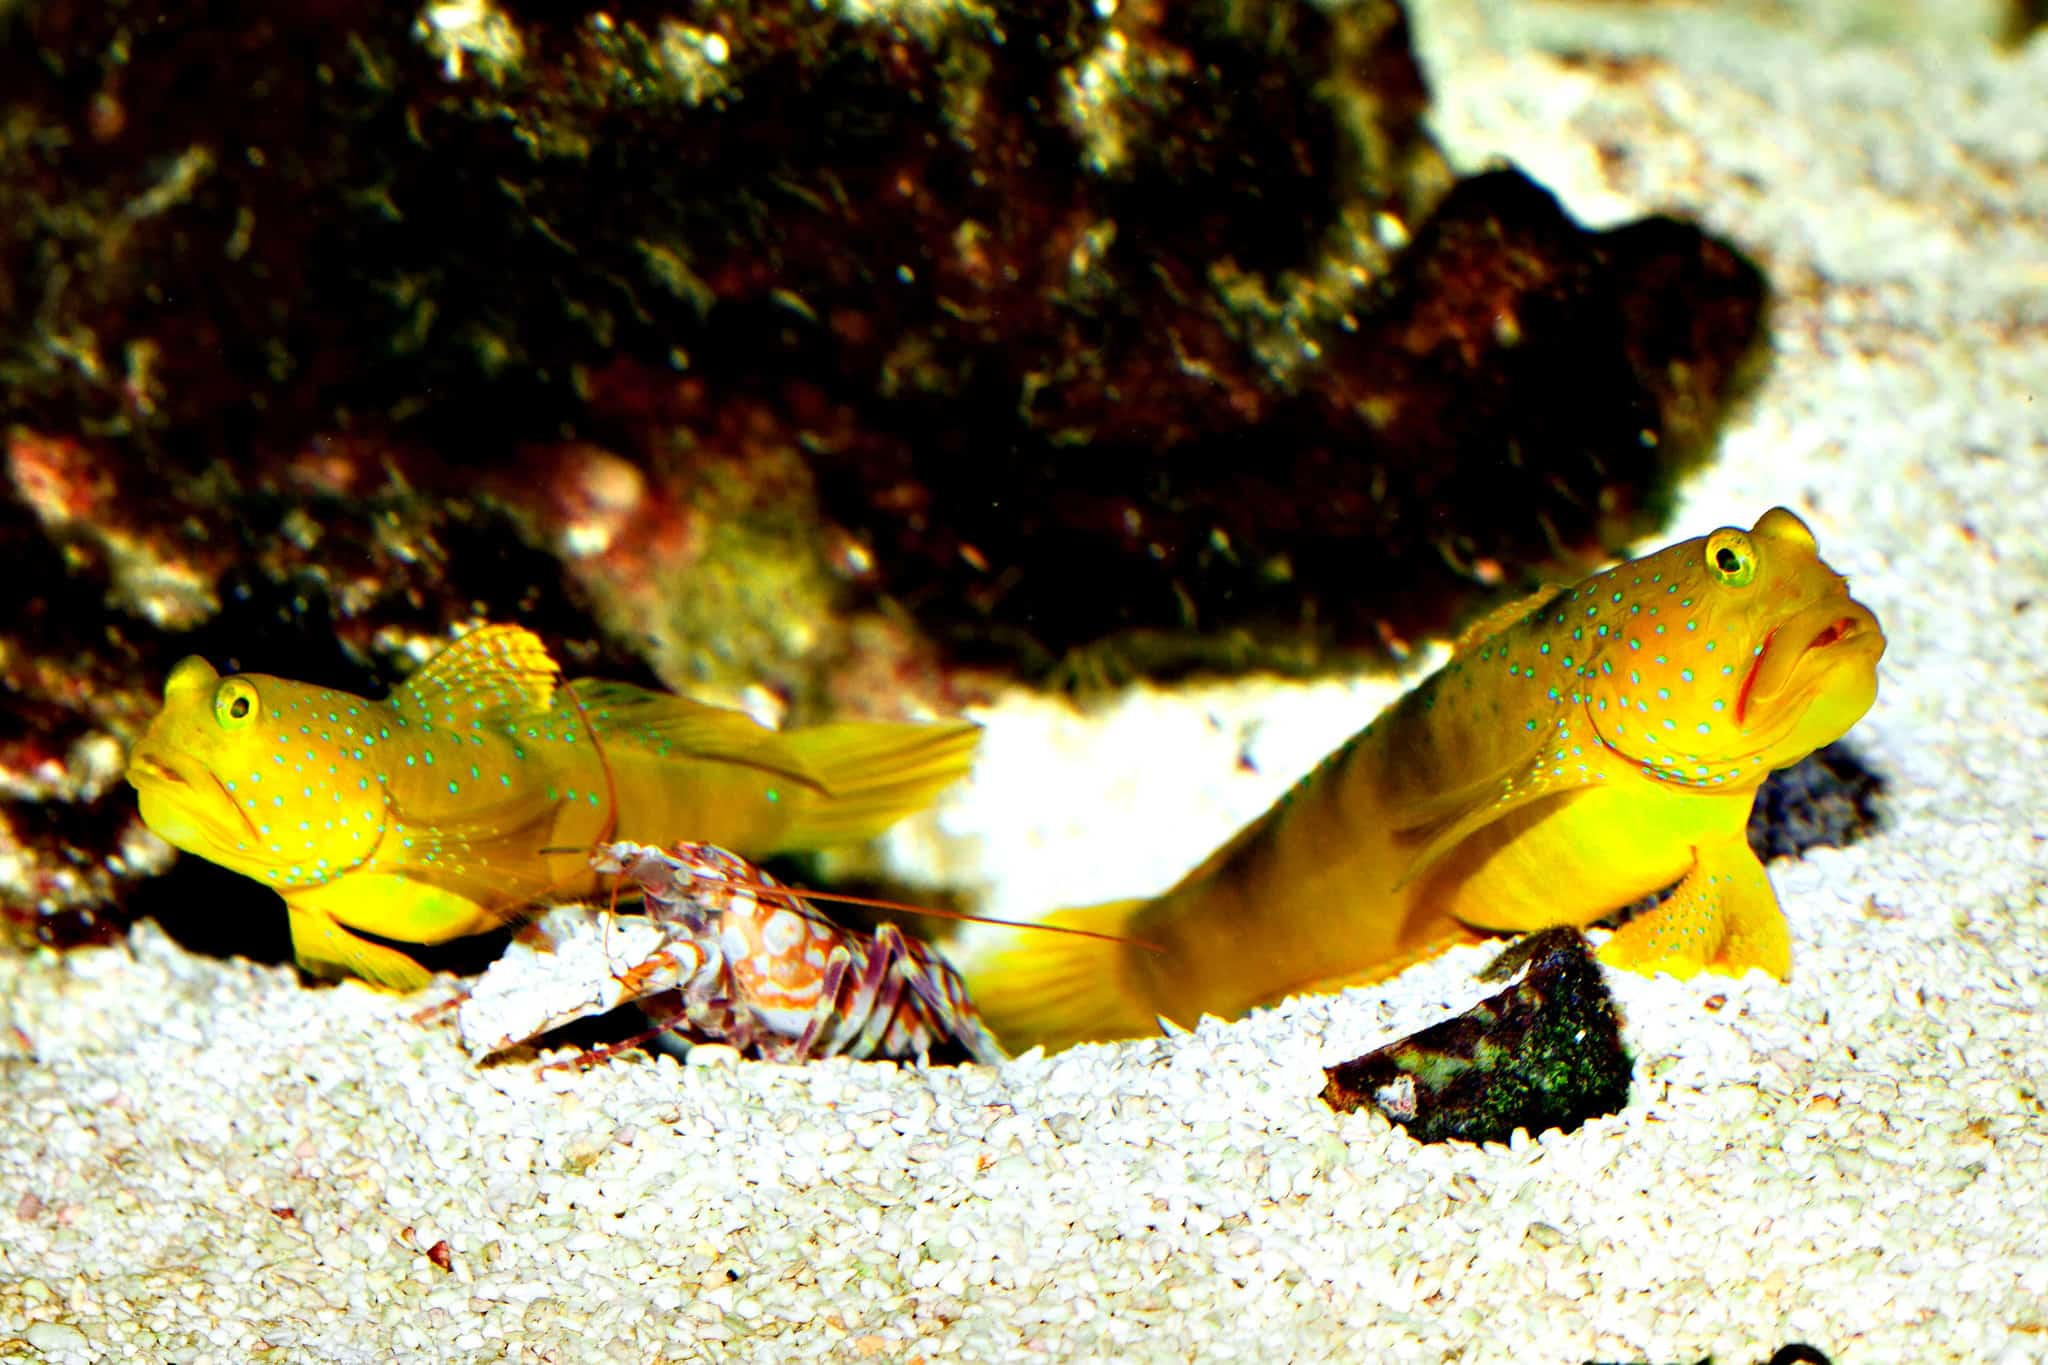 Pistol Shrimp and goby symbiotic relationships